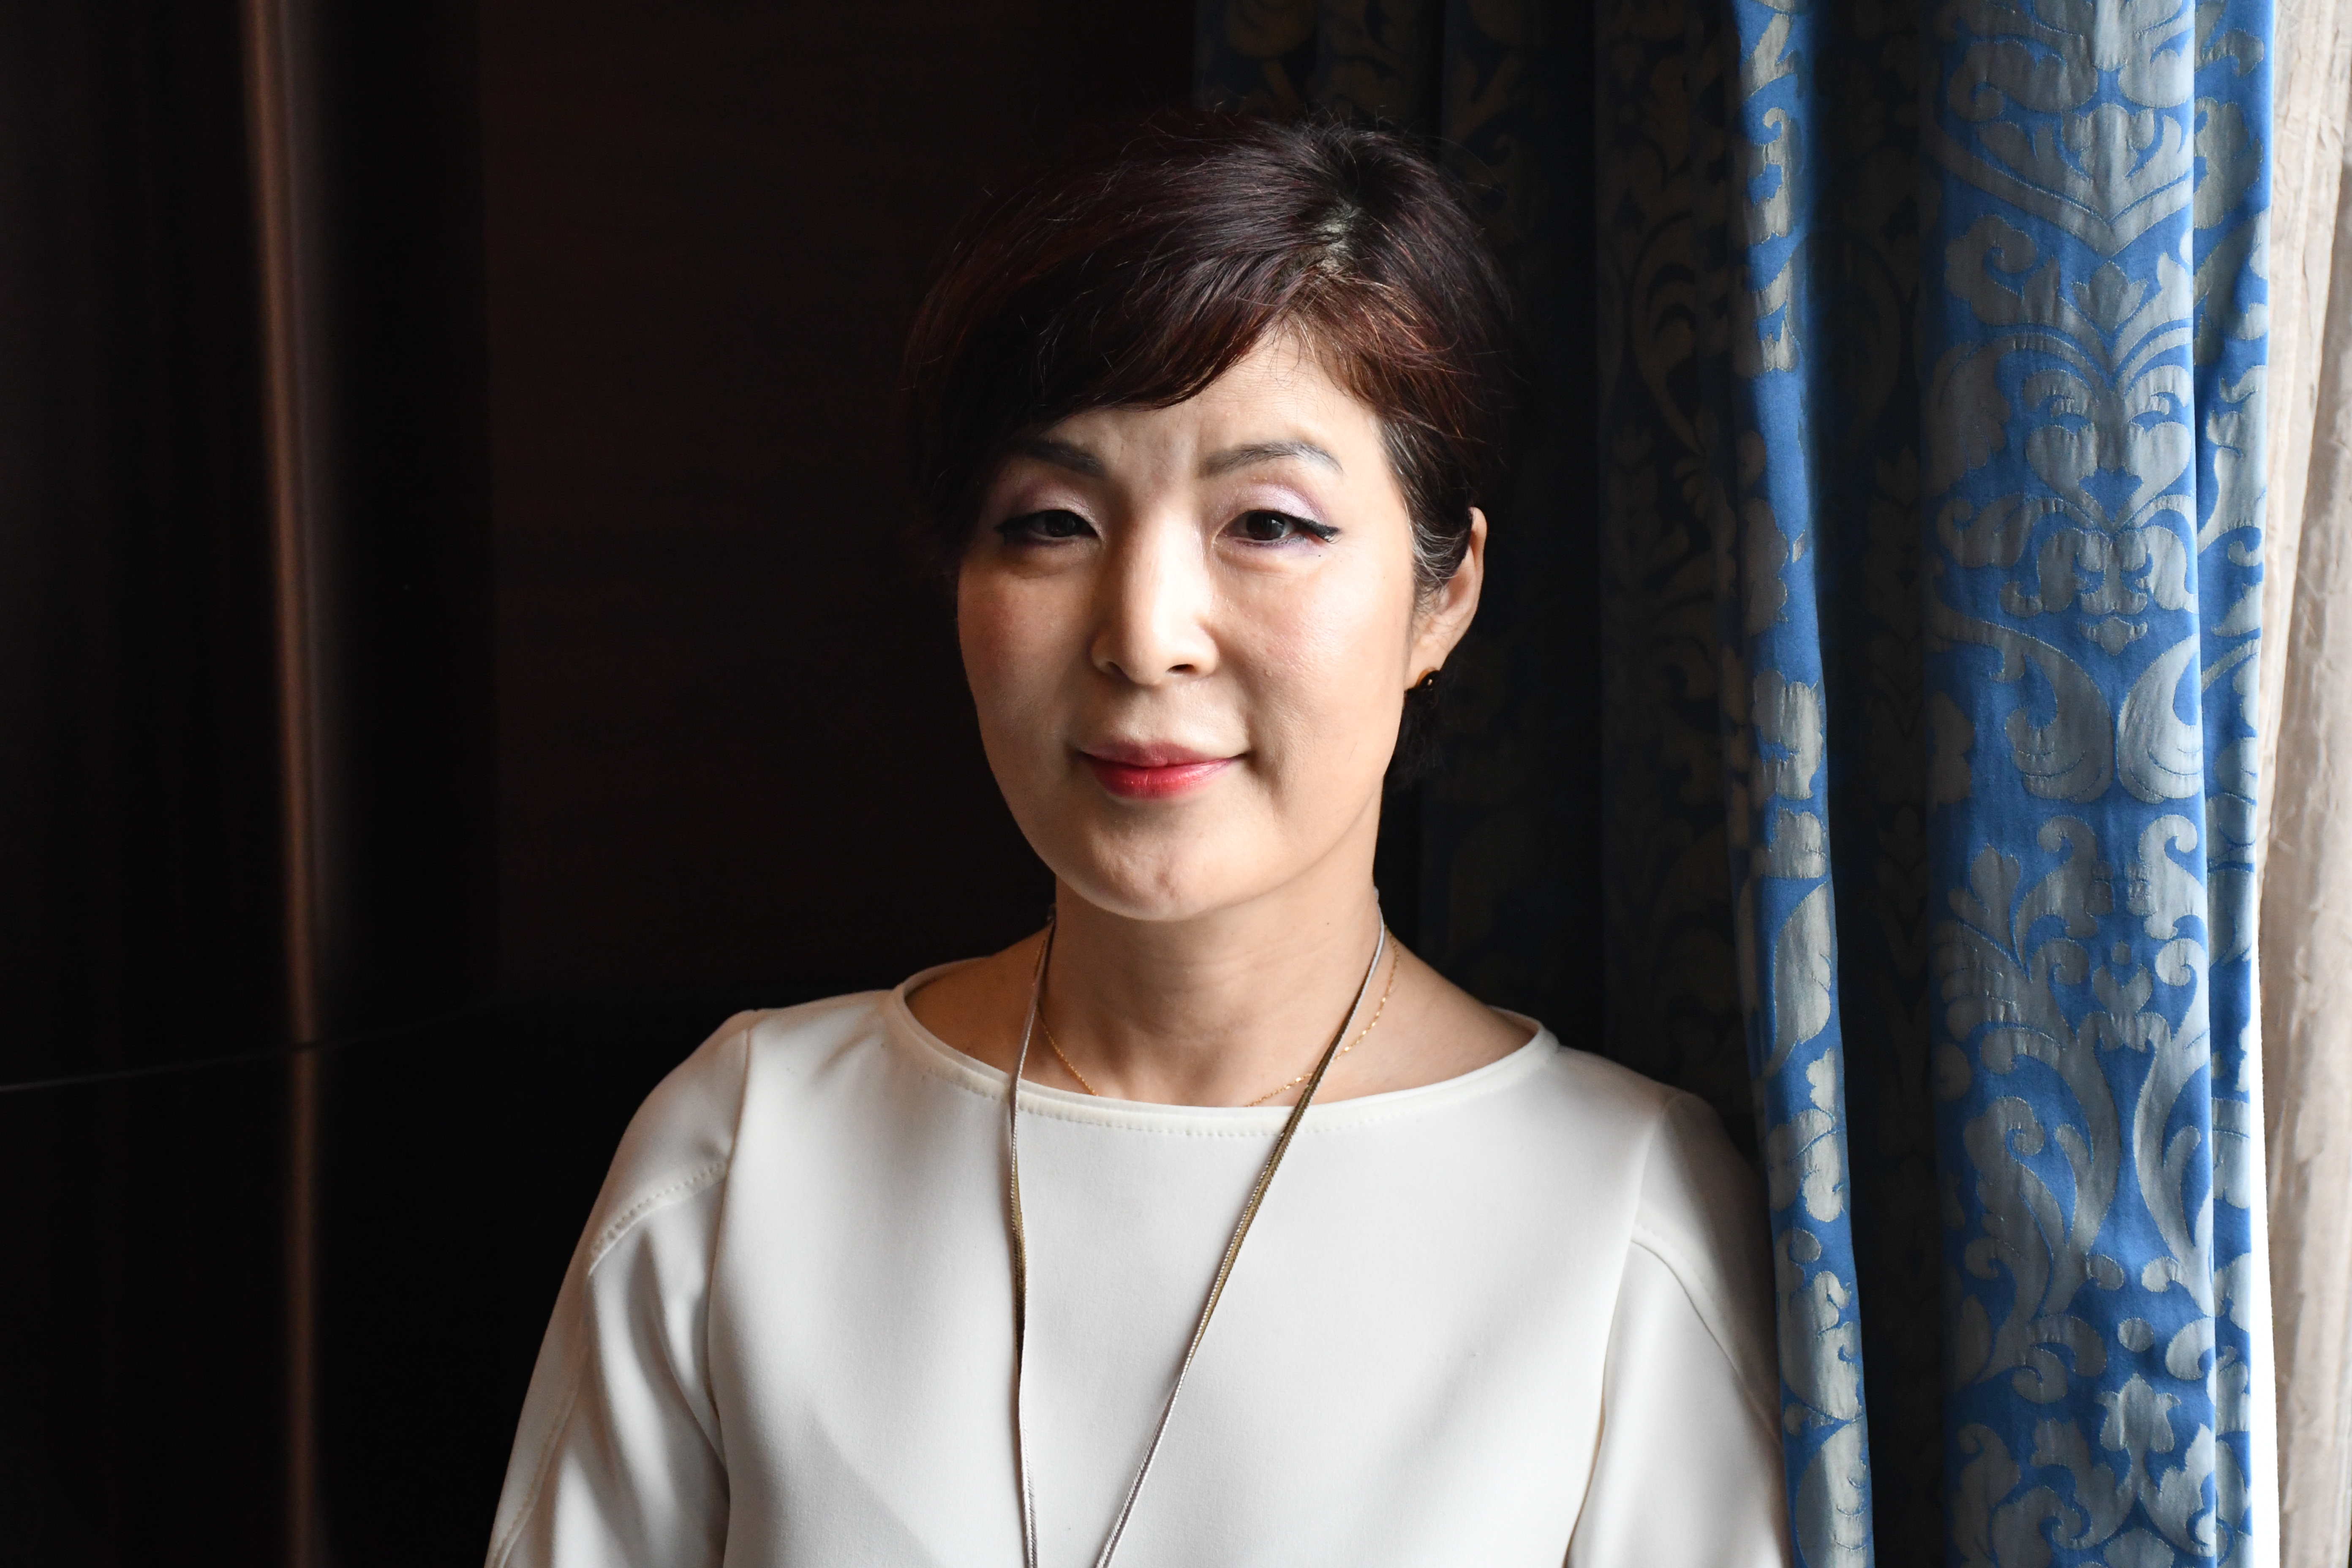 Enna Park, South Korea's deputy minister for foreign affairs, is pictured during her interview with TIME in Hong Kong on May 8, 2018. Park's four-day visit came on the invitation of the Asia Society Hong Kong Center.